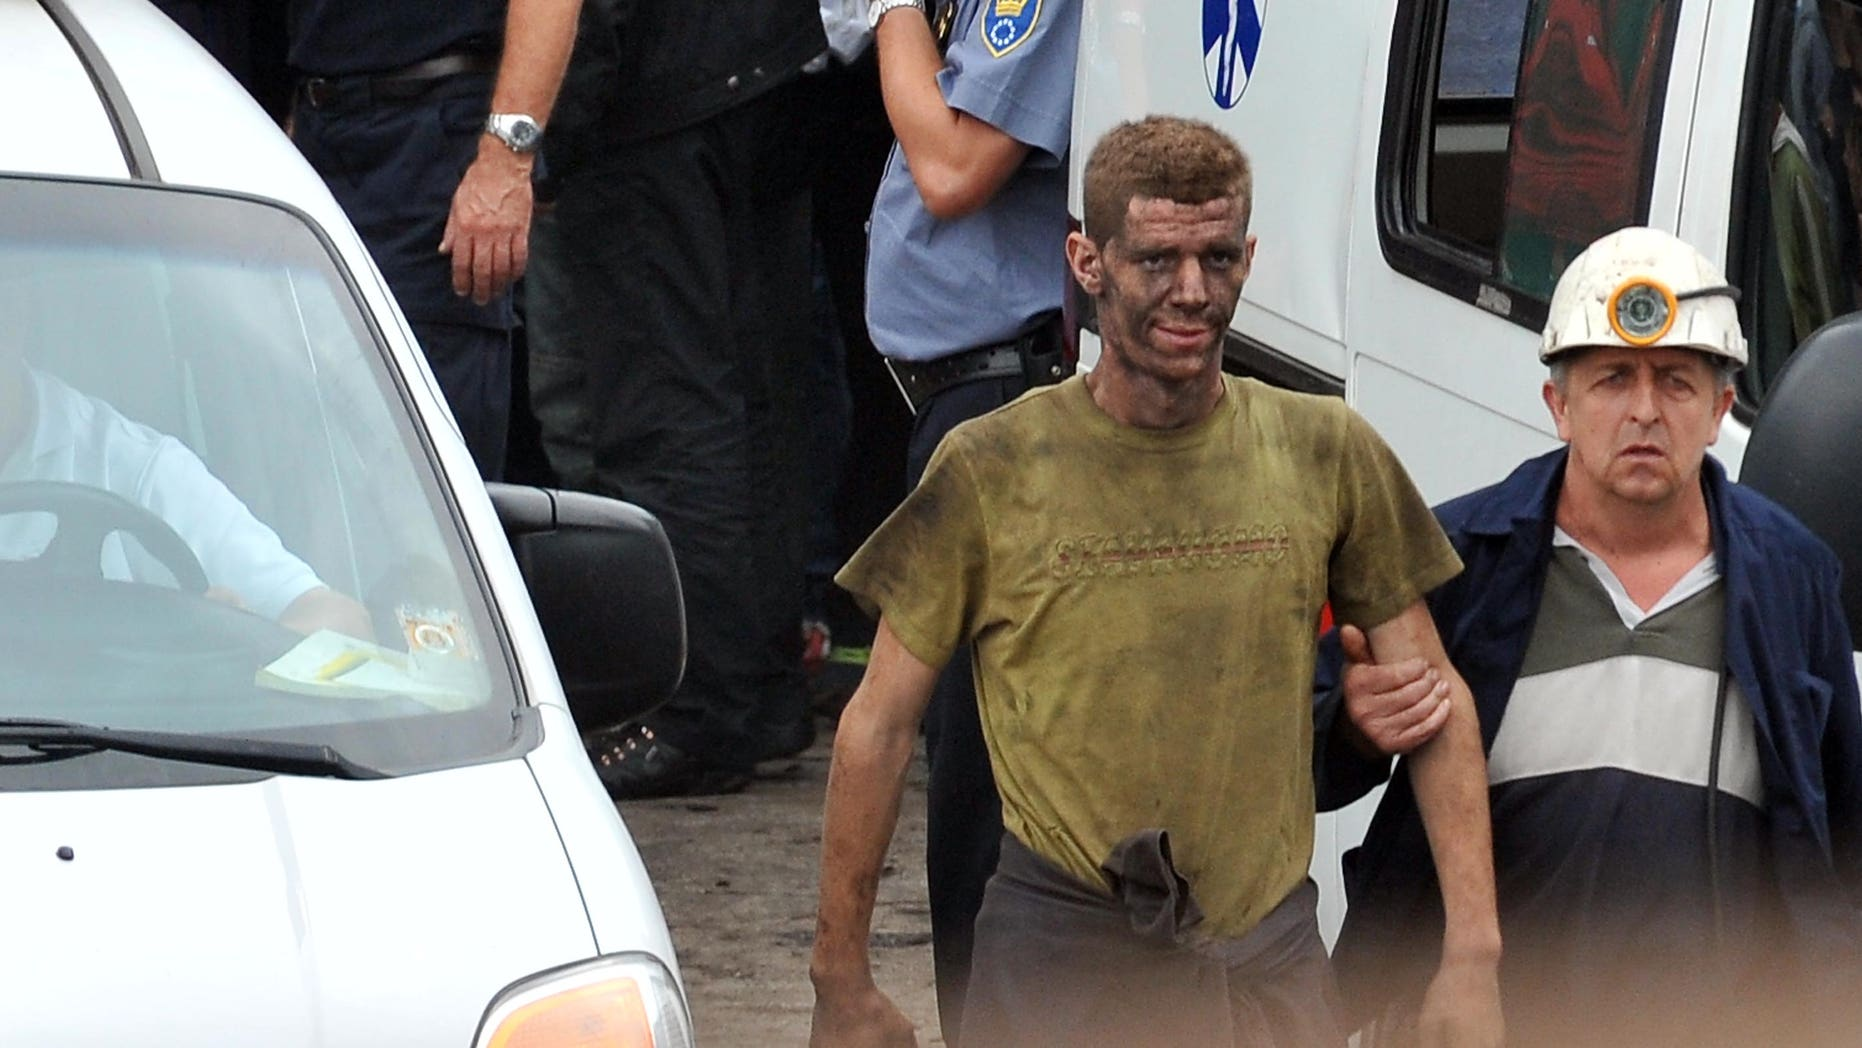 Sept. 5, 2014 - Coal miners help a fellow miner who was injured while trapped in the Raspotocje coal mine in Zenica, north of Sarajevo, Bosnia. Rescuers pulled out some of the 34 miners who had been trapped deep inside the collapsed coal mine, 1,600 feet below ground.